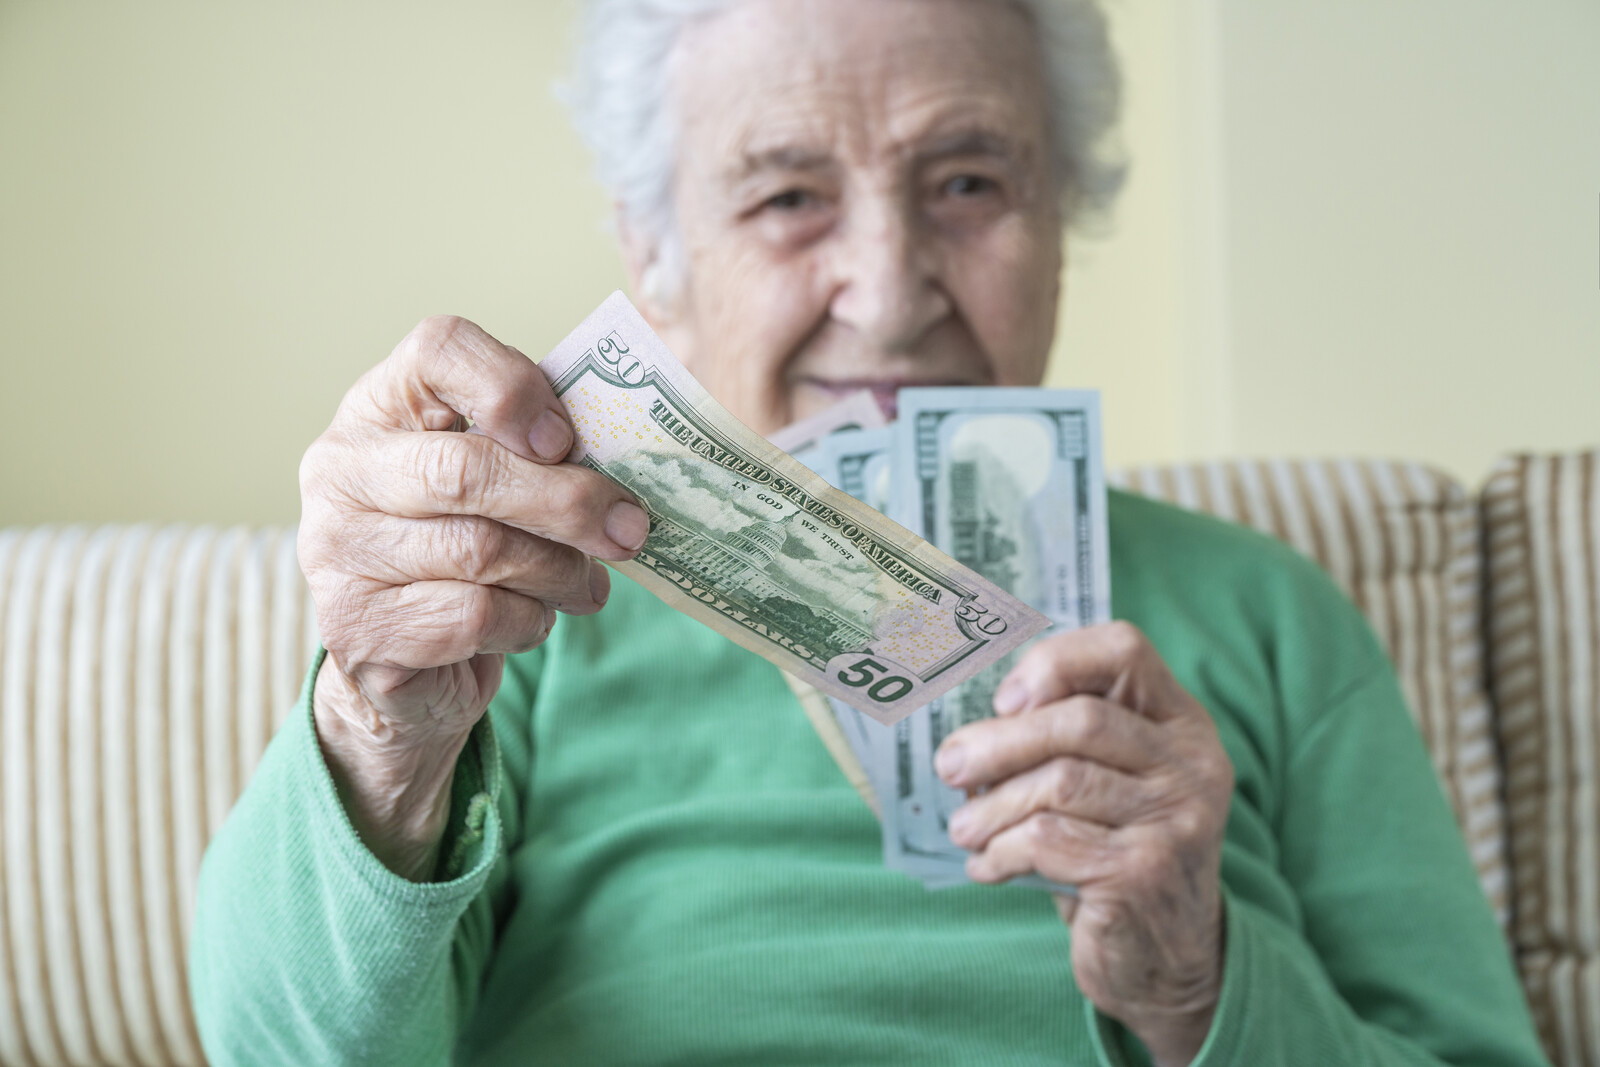 Senior woman in green sweater handing a fifty dollar to someone holding cash in the other hand